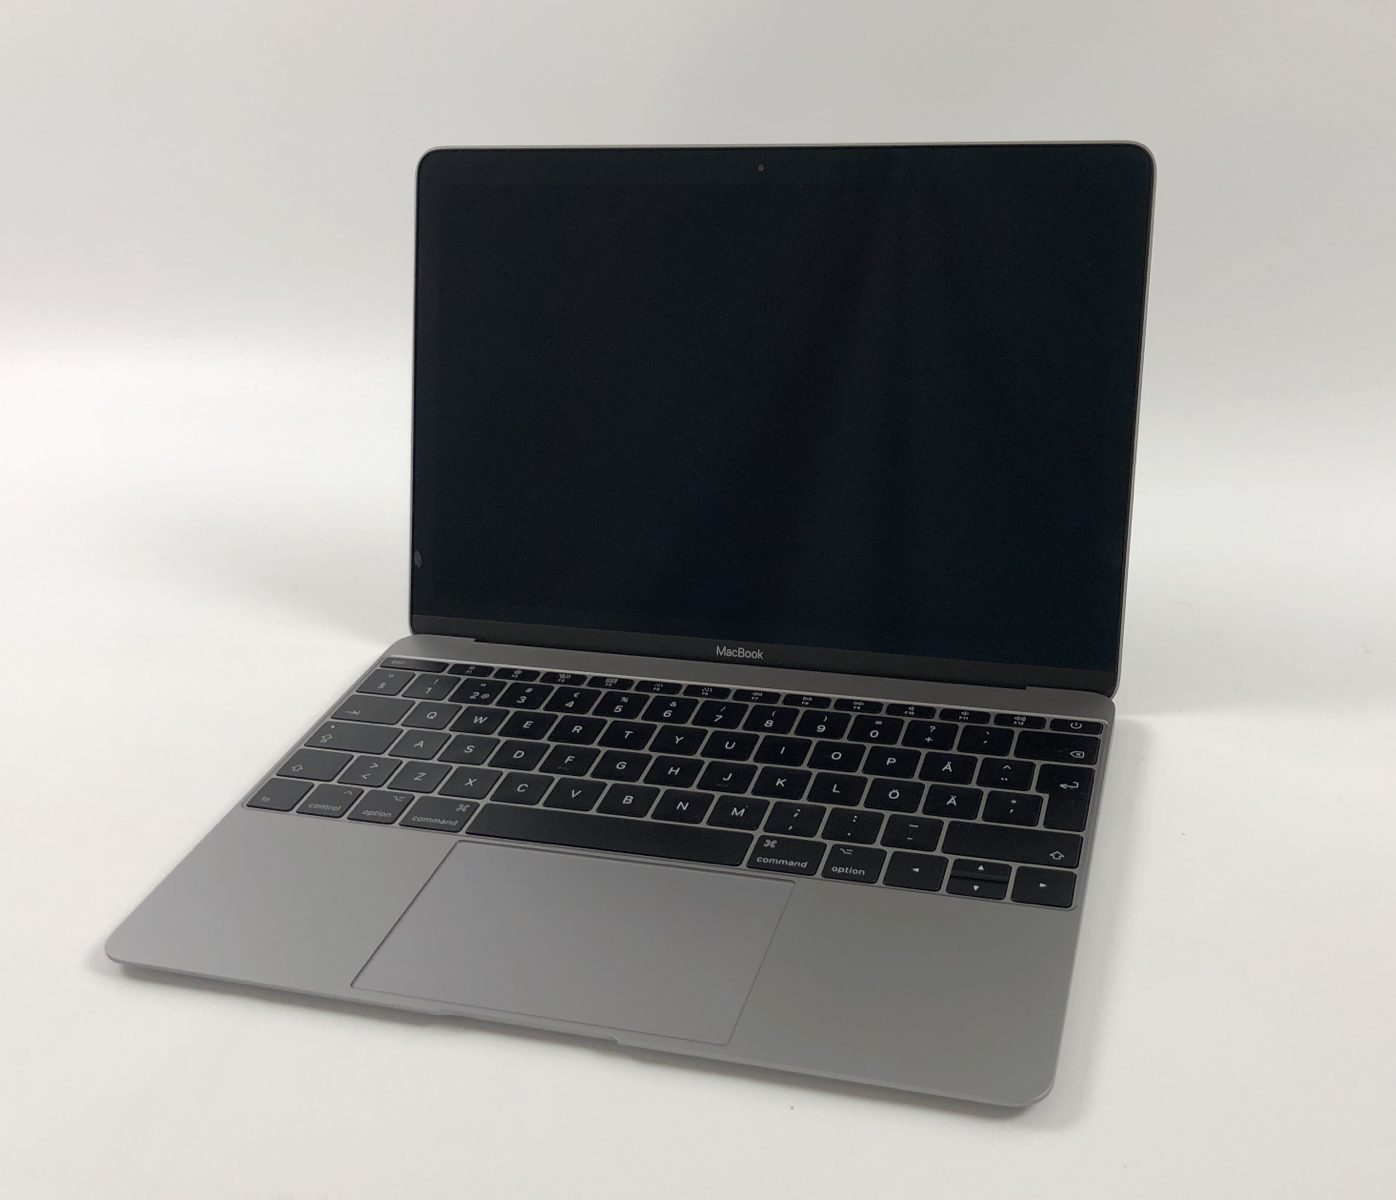 "MacBook 12"" Mid 2017 (Intel Core m3 1.2 GHz 8 GB RAM 256 GB SSD), Space Gray, Intel Core m3 1.2 GHz, 8 GB RAM, 256 GB SSD, Kuva 1"